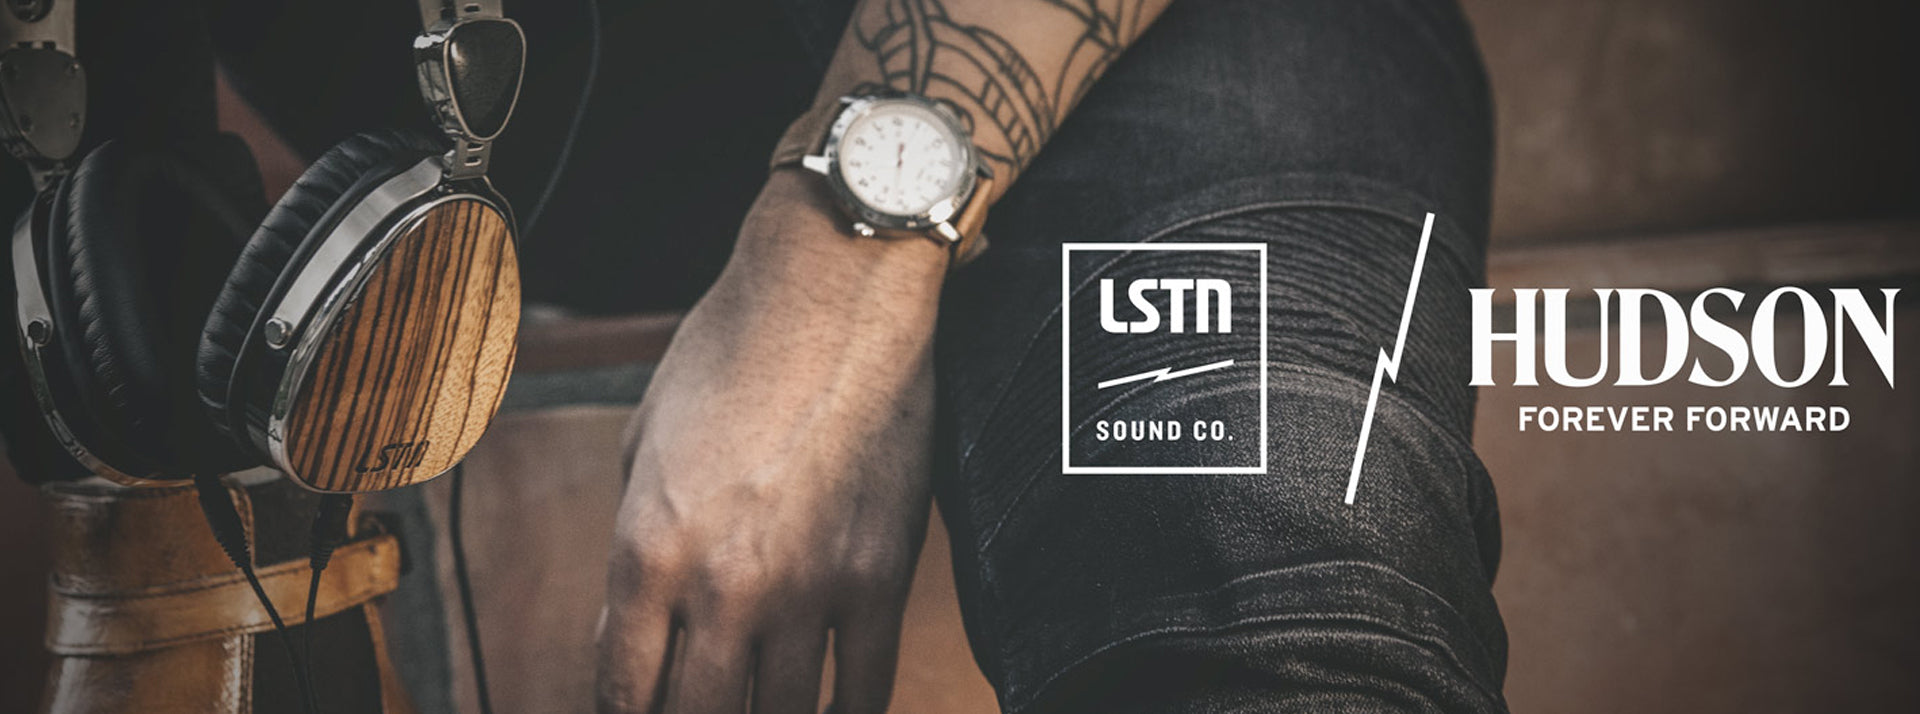 hudson jeans lstn sound holiday collab 2015